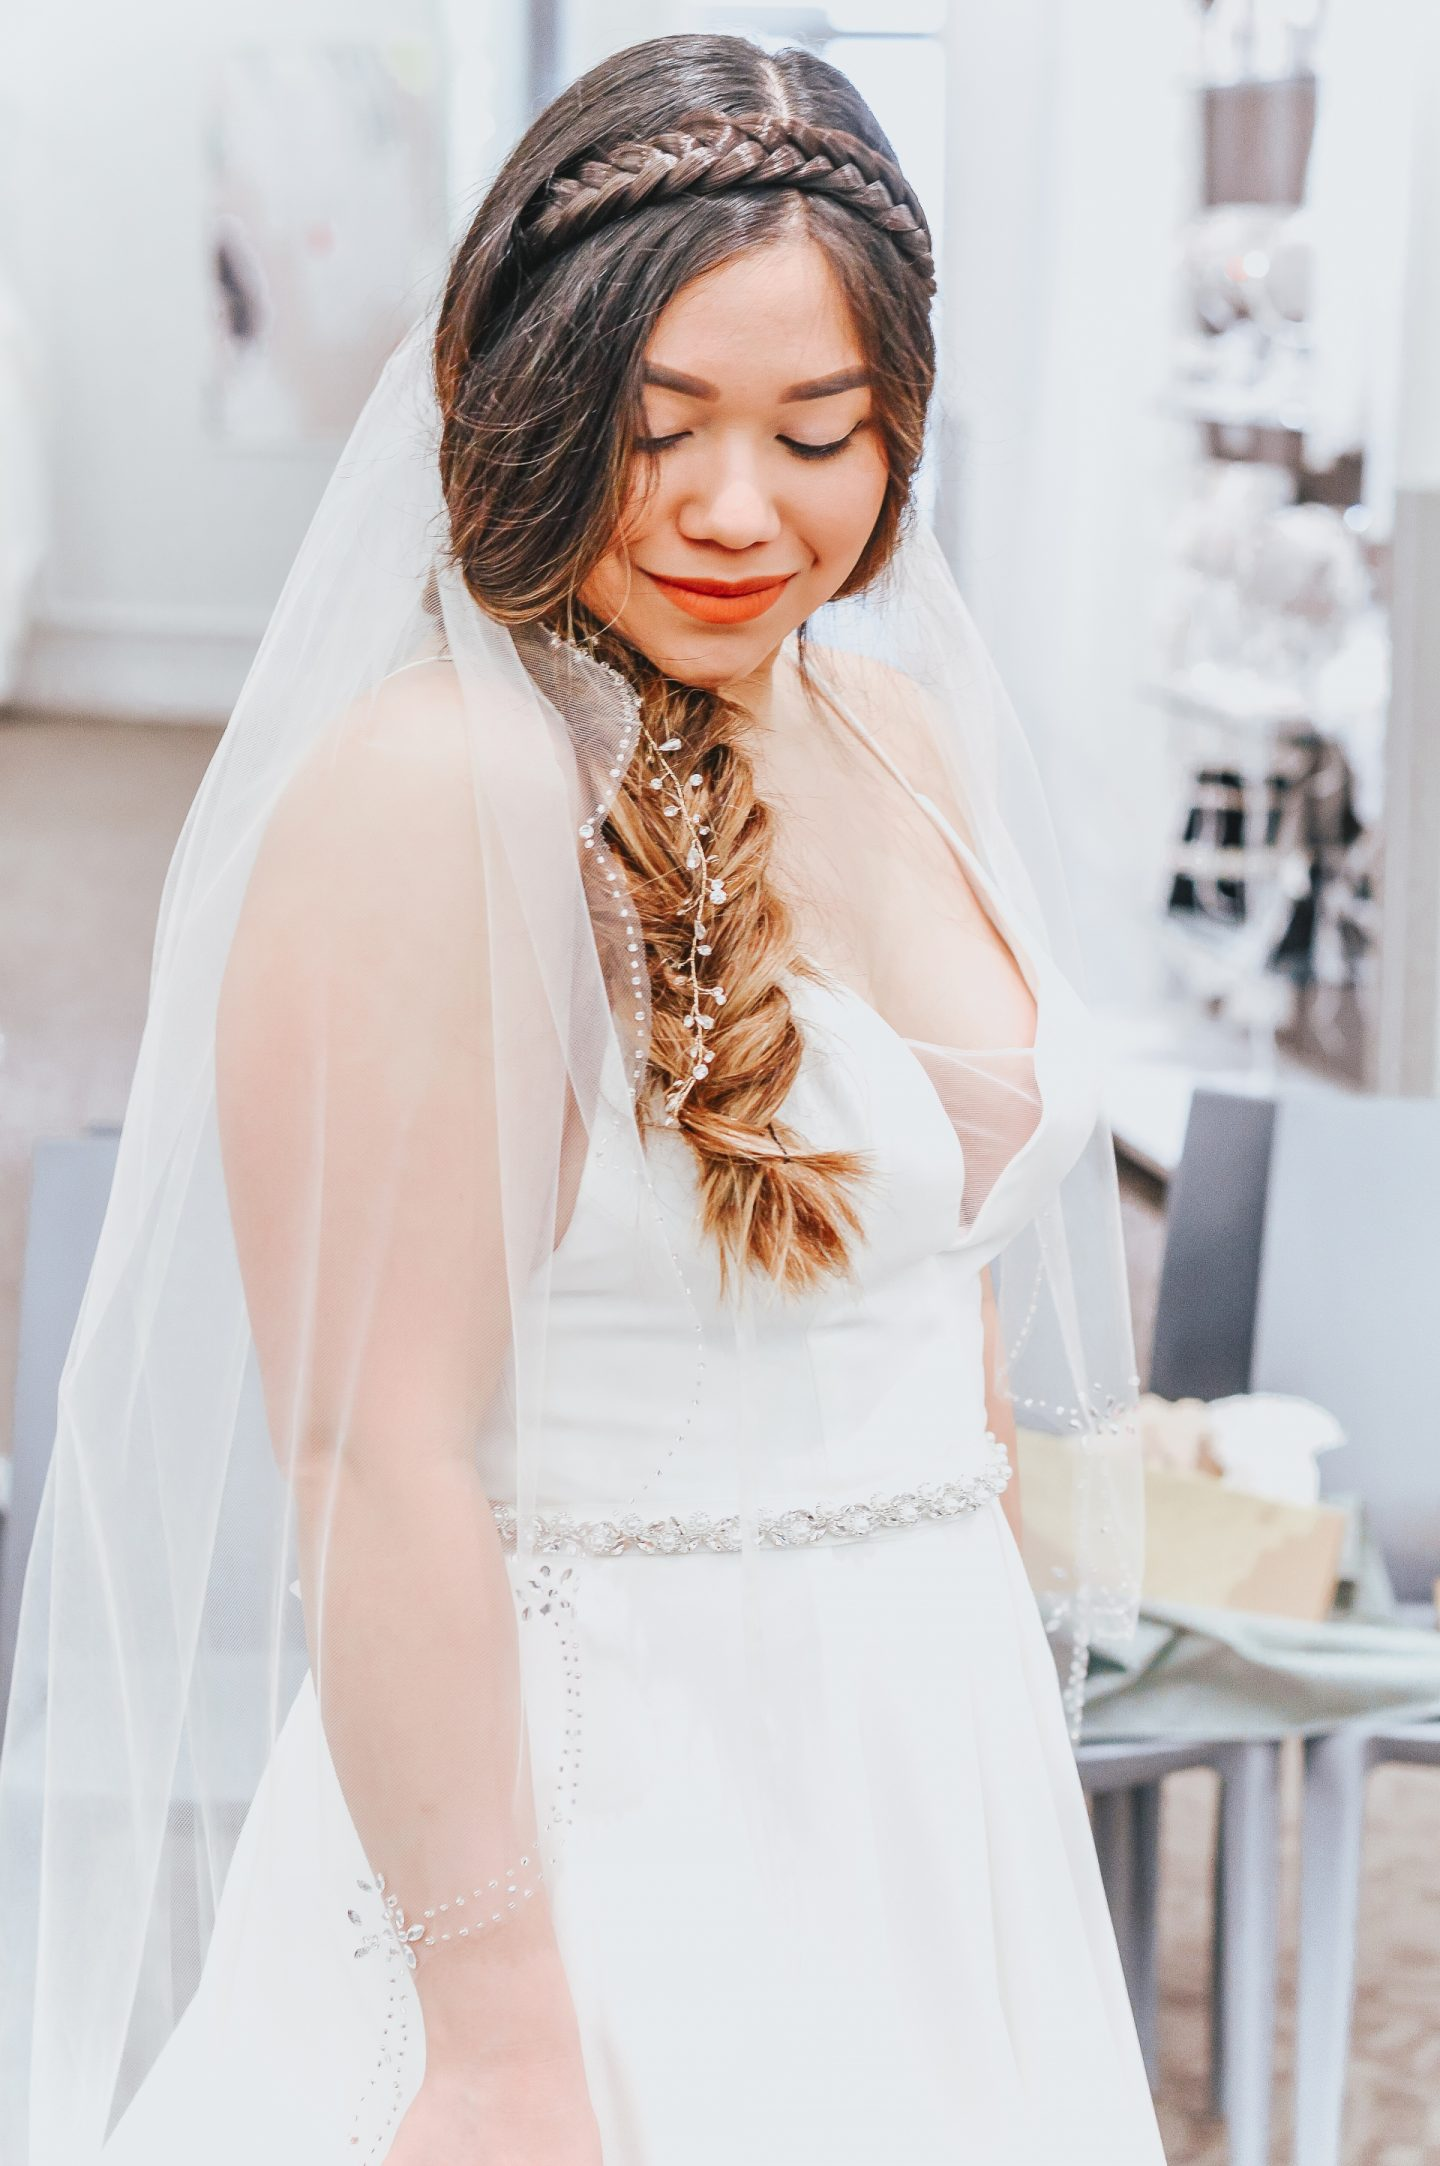 On the Hunt for the Perfect Little White Dress